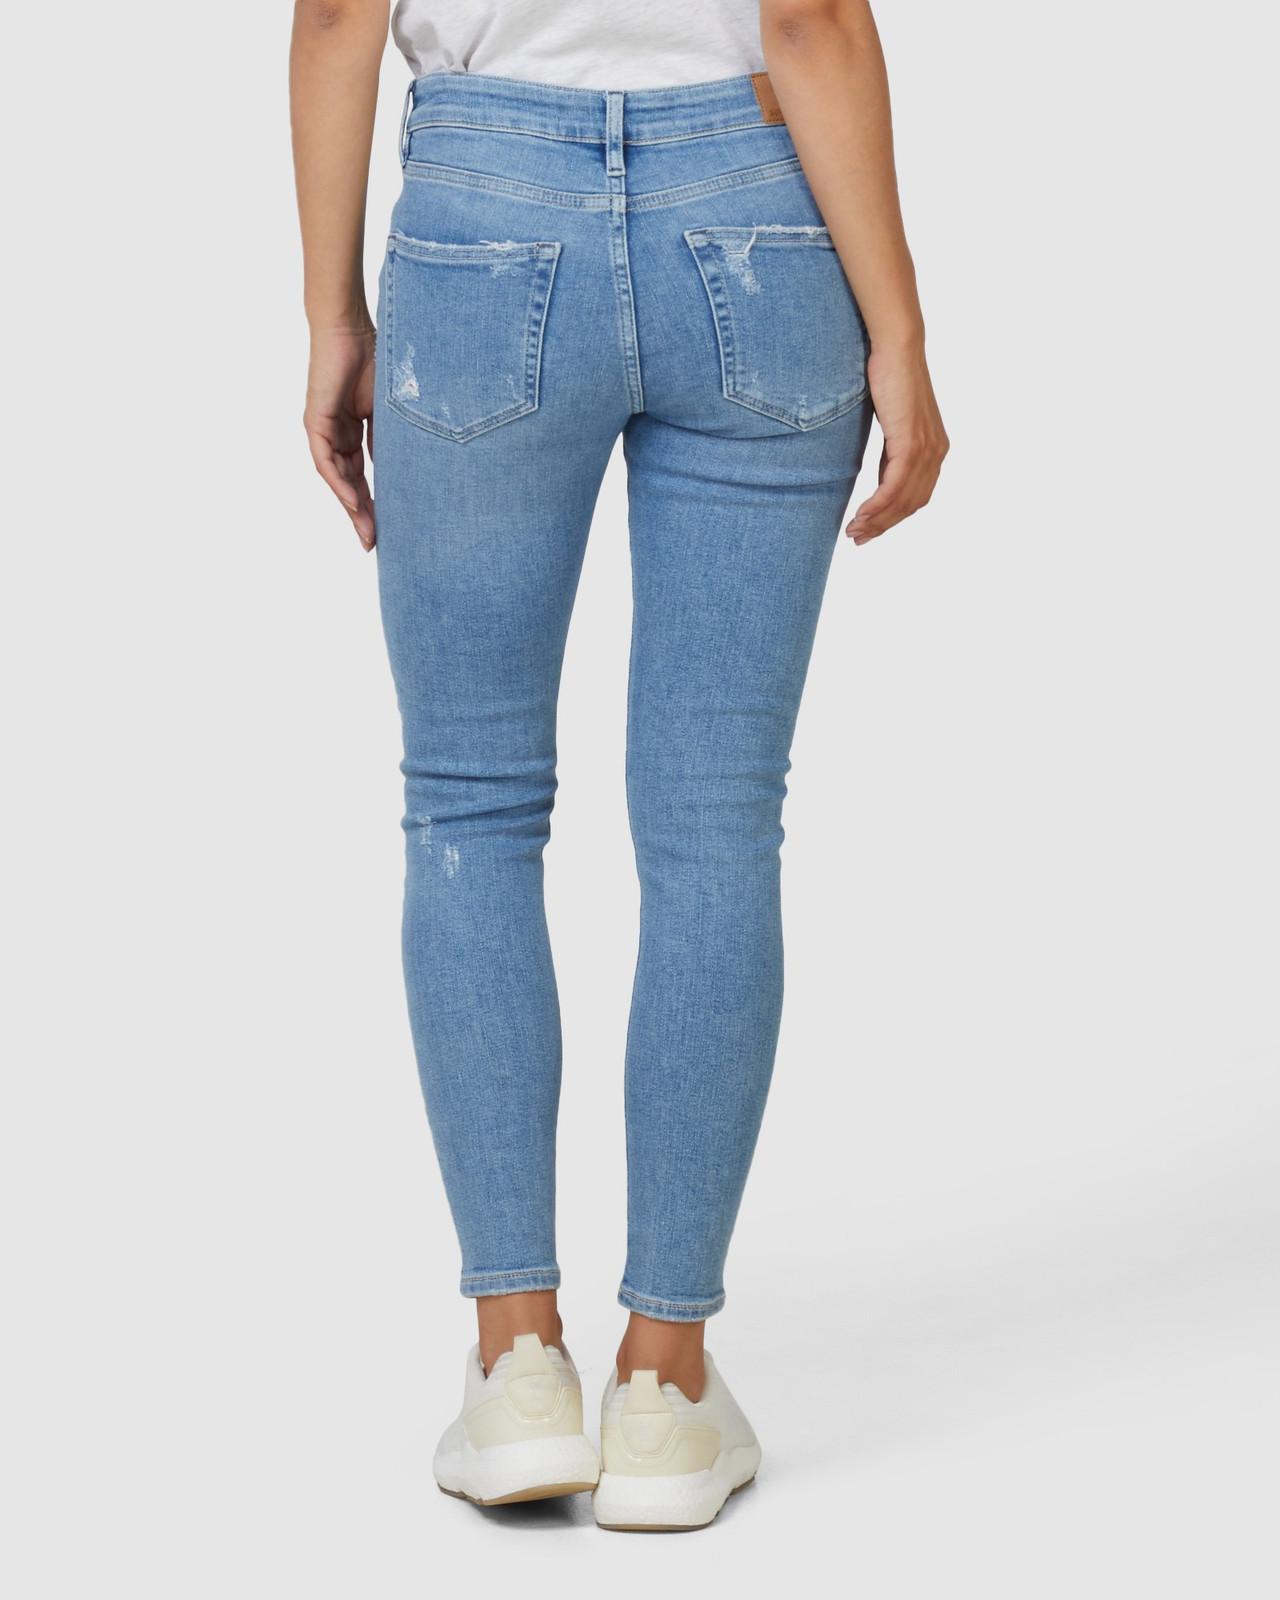 Superdry Womens MID RISE SKINNY Blue Skinny Jeans 7